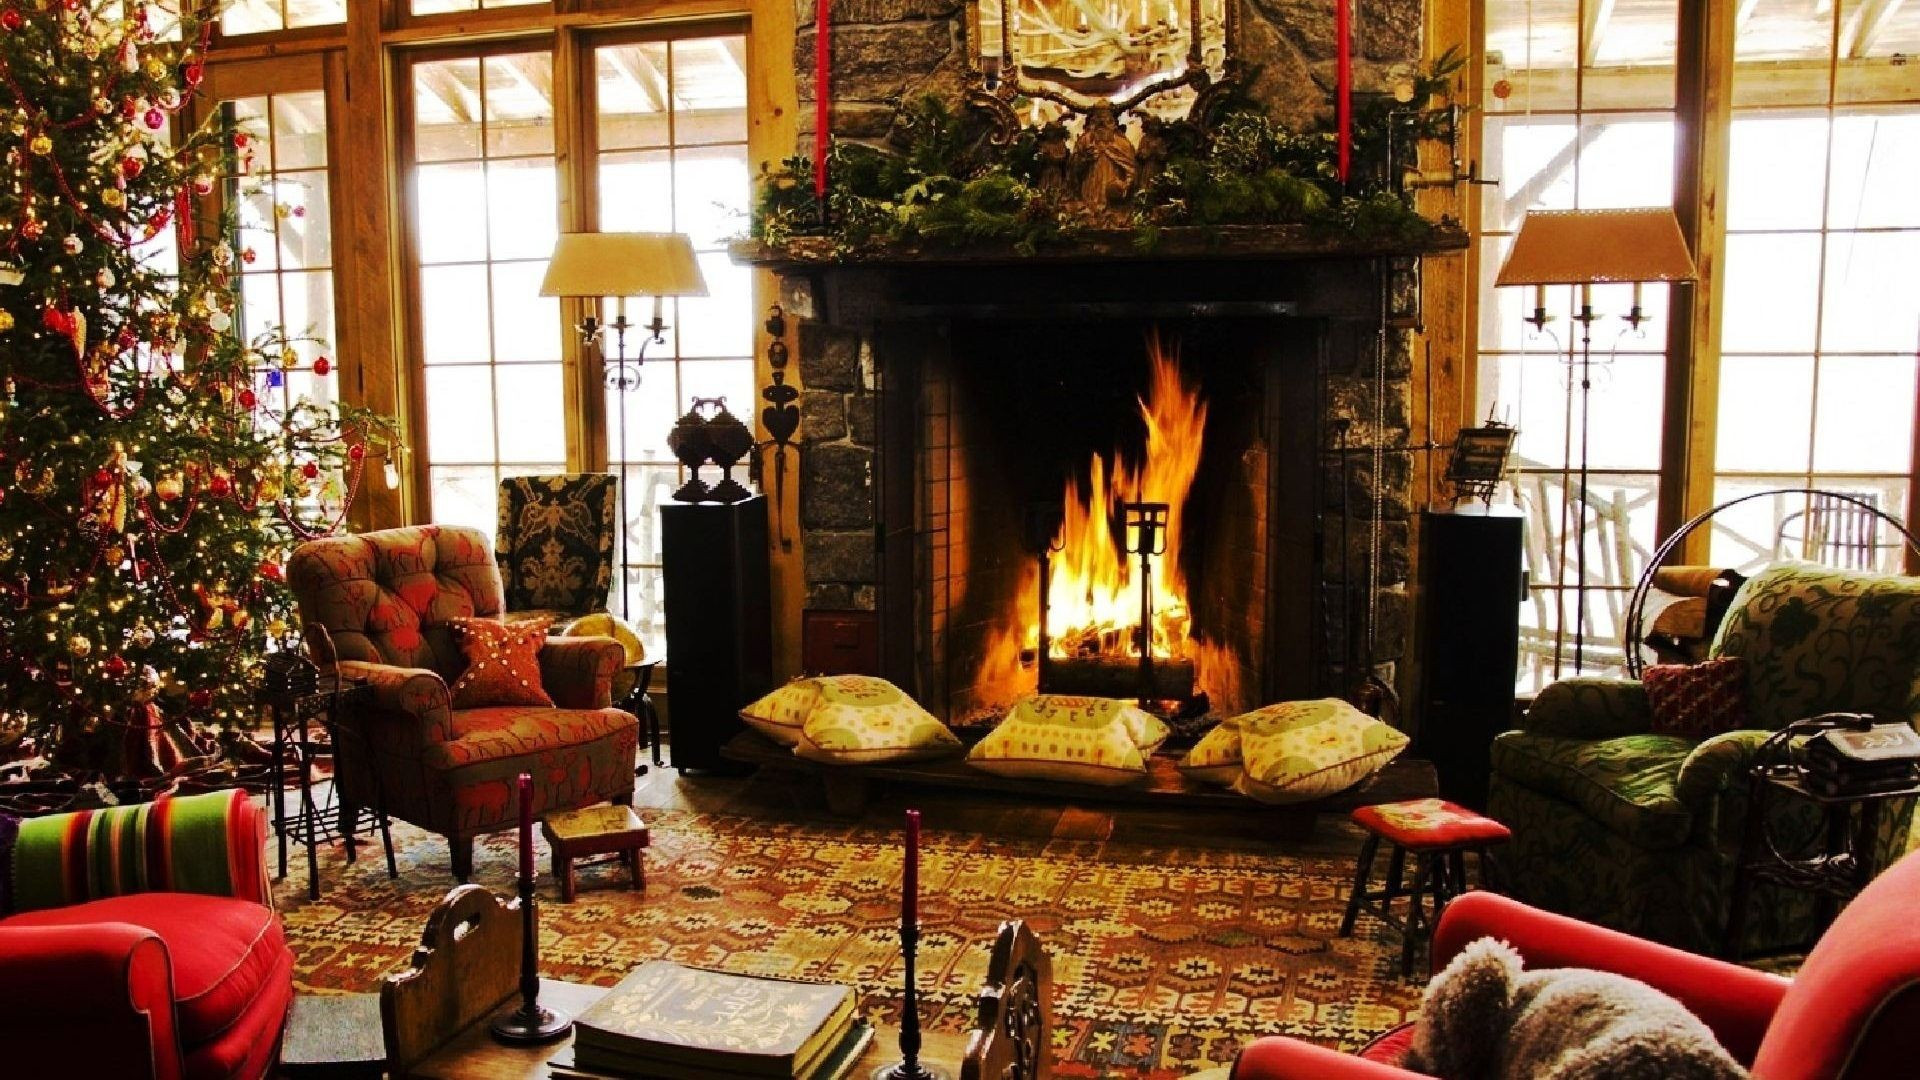 Christmas Wallpaper Fireplace  Christmas Chimney Wallpapers Wallpaper Cave